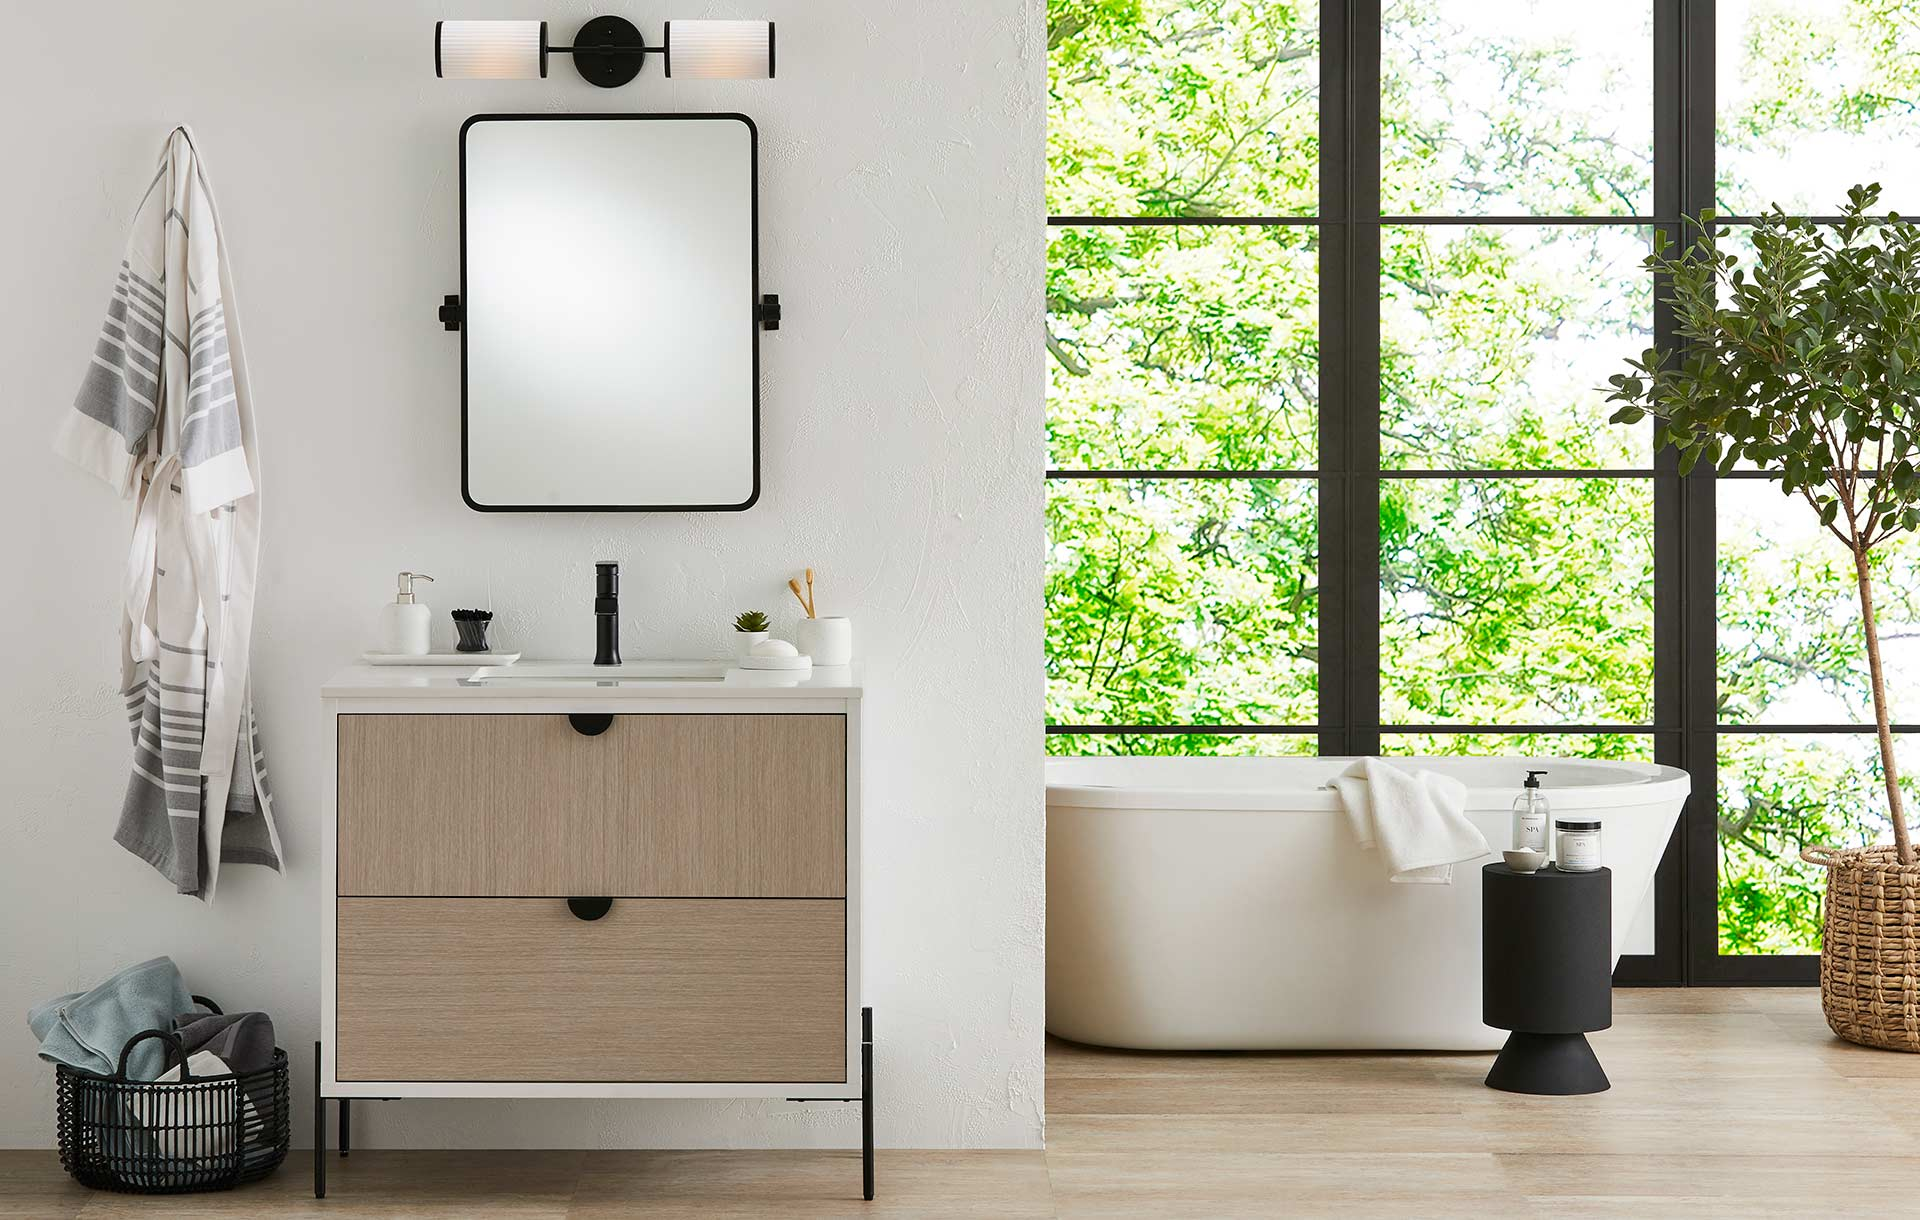 GlucksteinElements | Easy to install vanities, in modern and transitional styles, designed to inspire your entire bathroom